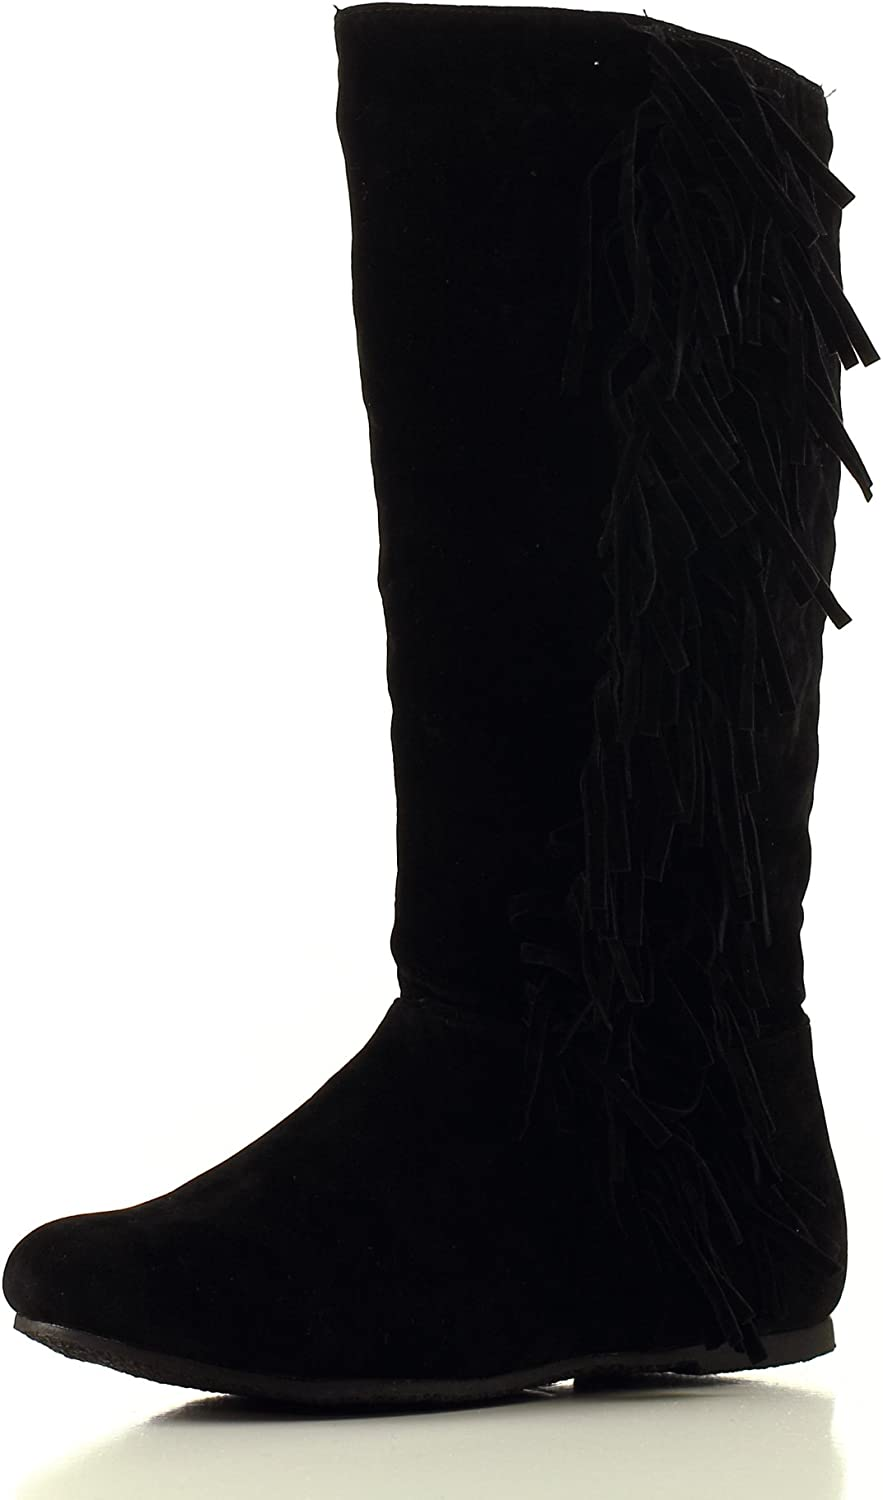 Nvie Designs Womens Suede Senora Boots with Fringe - Black/Grey